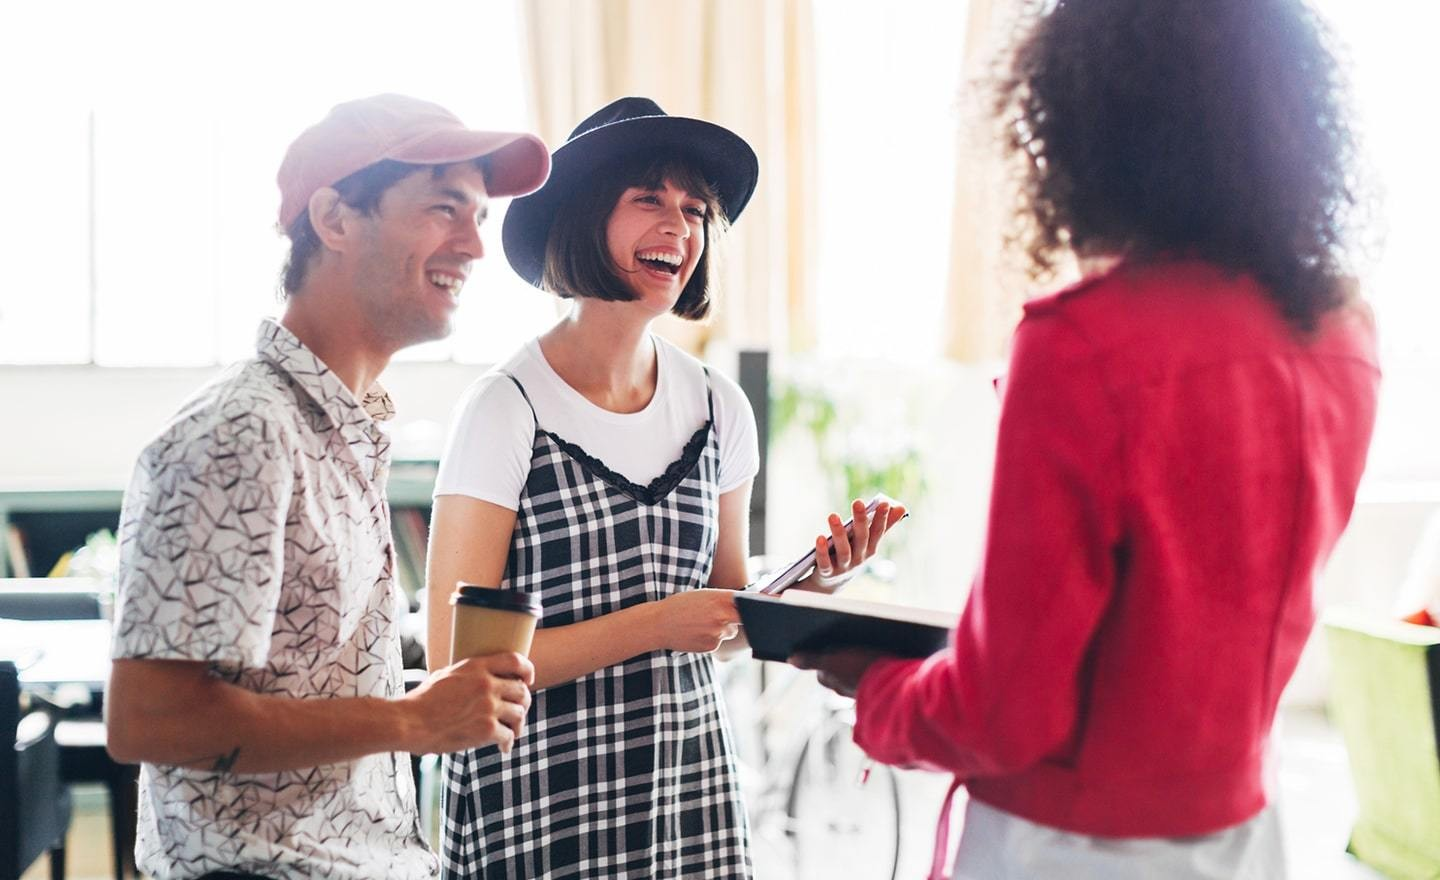 Three people having a conversation while standing